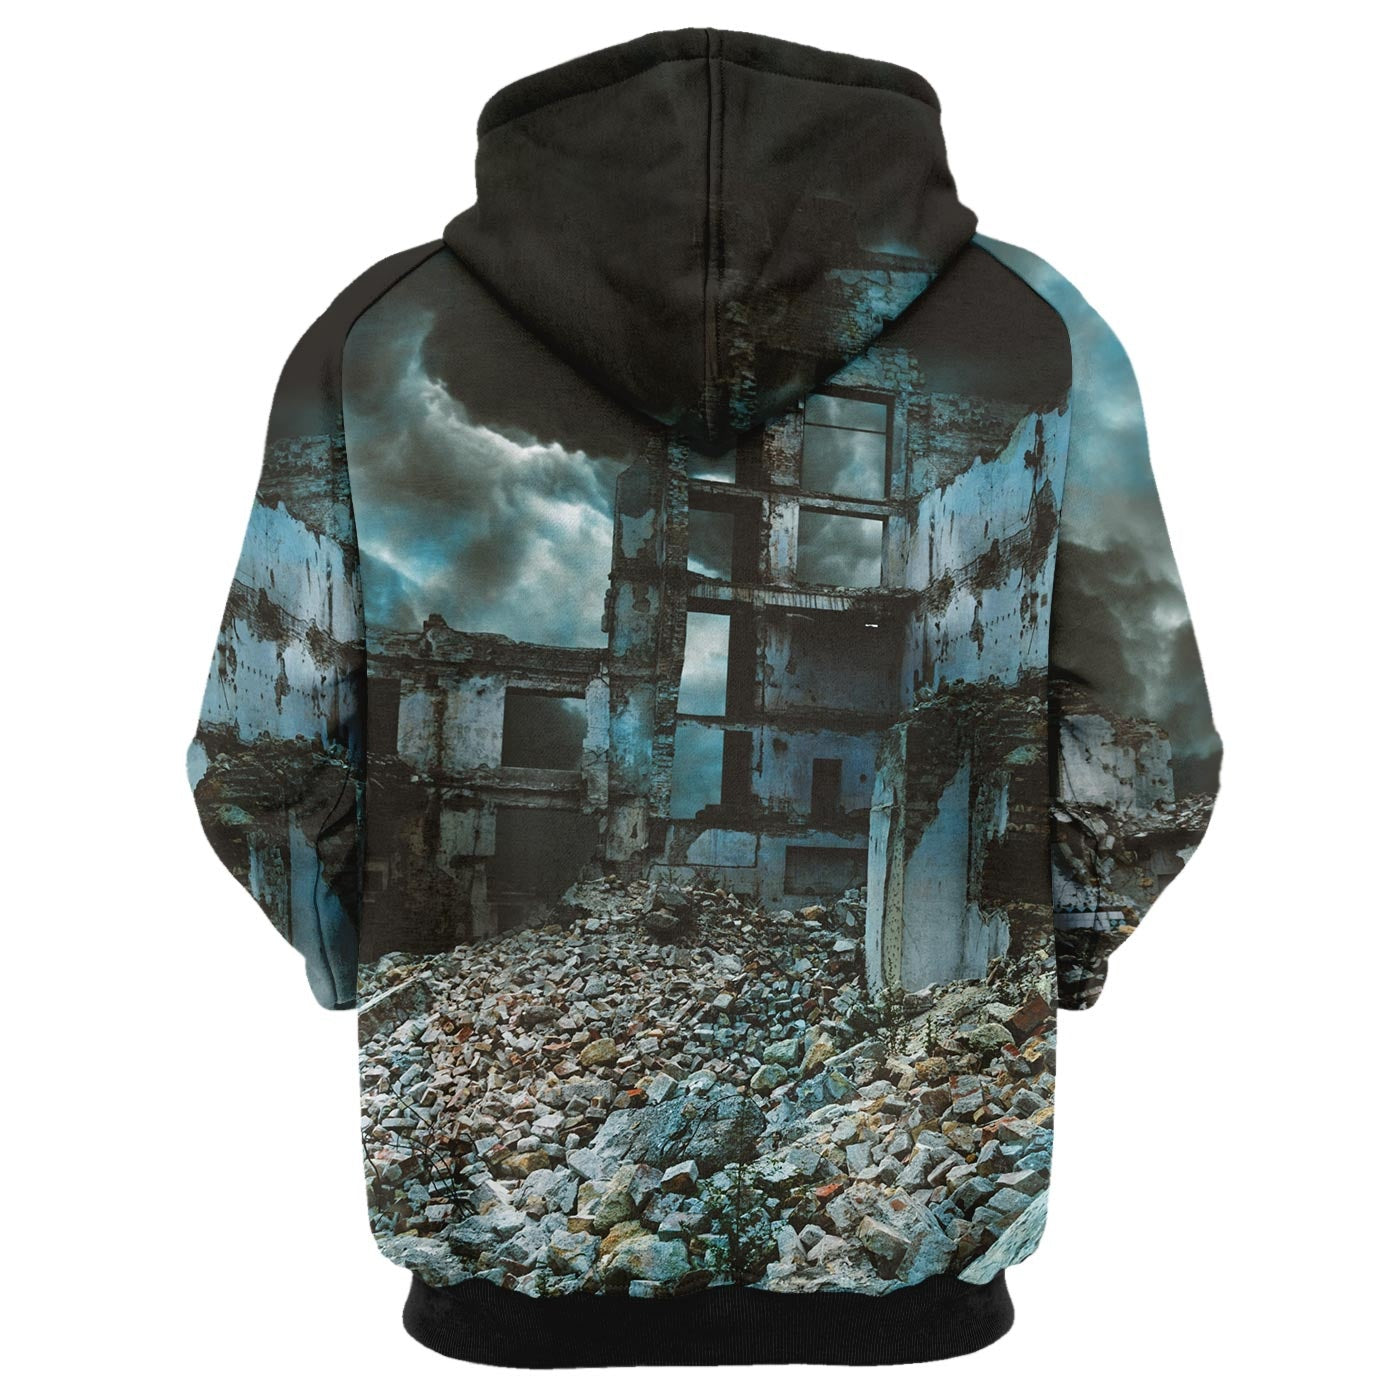 Apocalyptic Soldier Hoodie